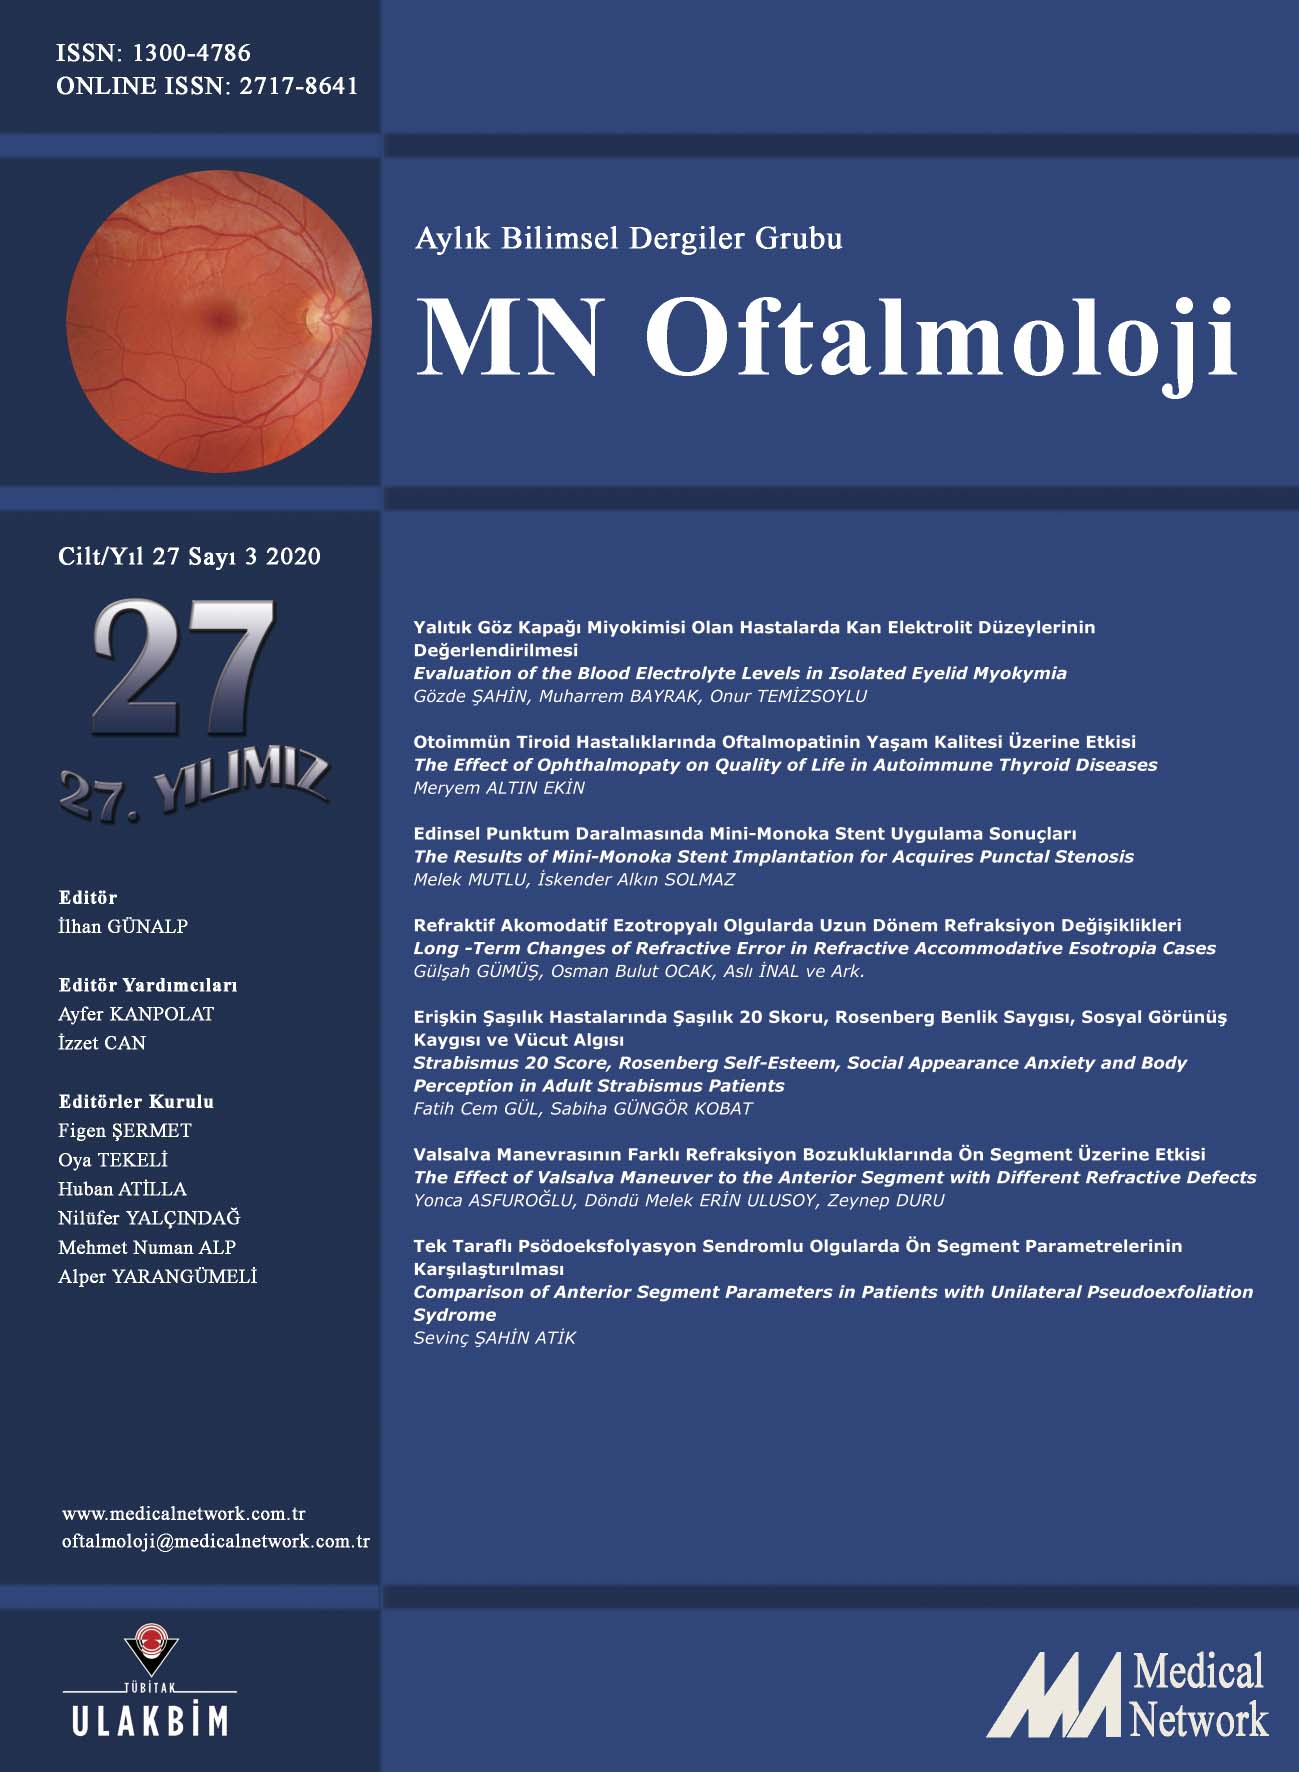 <p>MN Oftalmoloji Cilt: 27 Sayı: 3 2020 (MN Ophthalmology Volume: 27 No: 3 2020)</p>